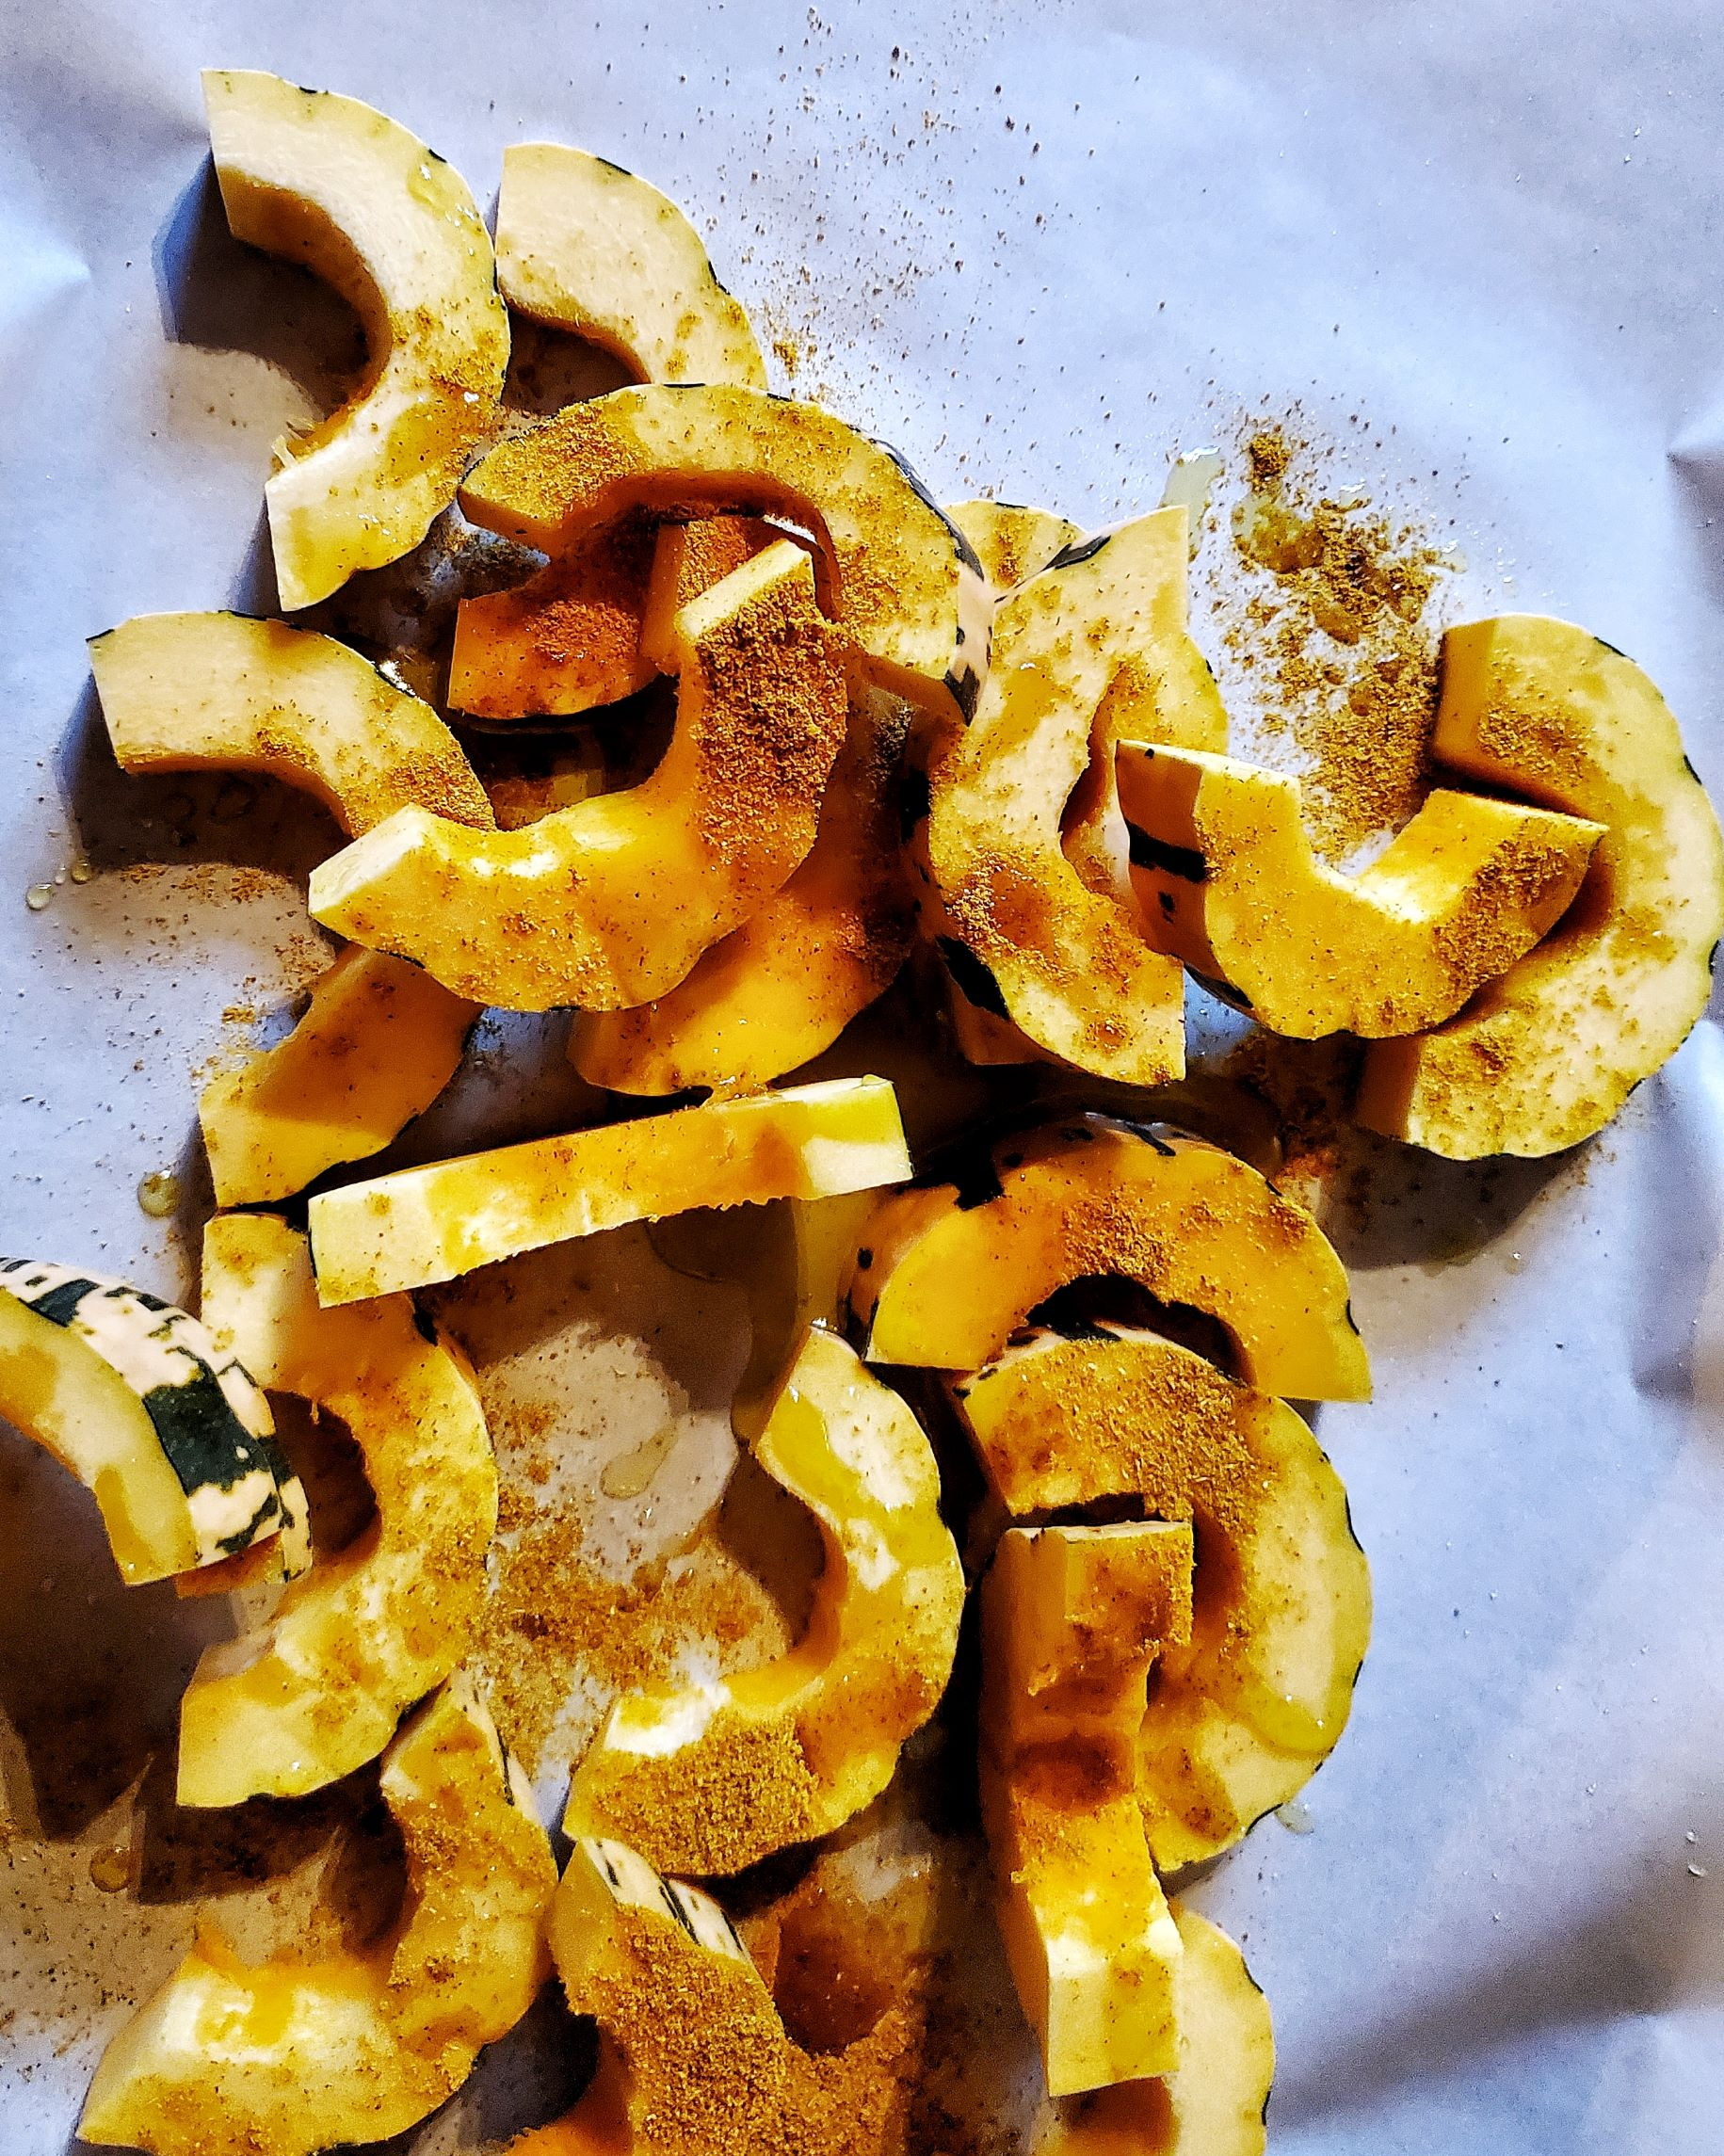 Squash slices with olive oil and curry powder on parhment